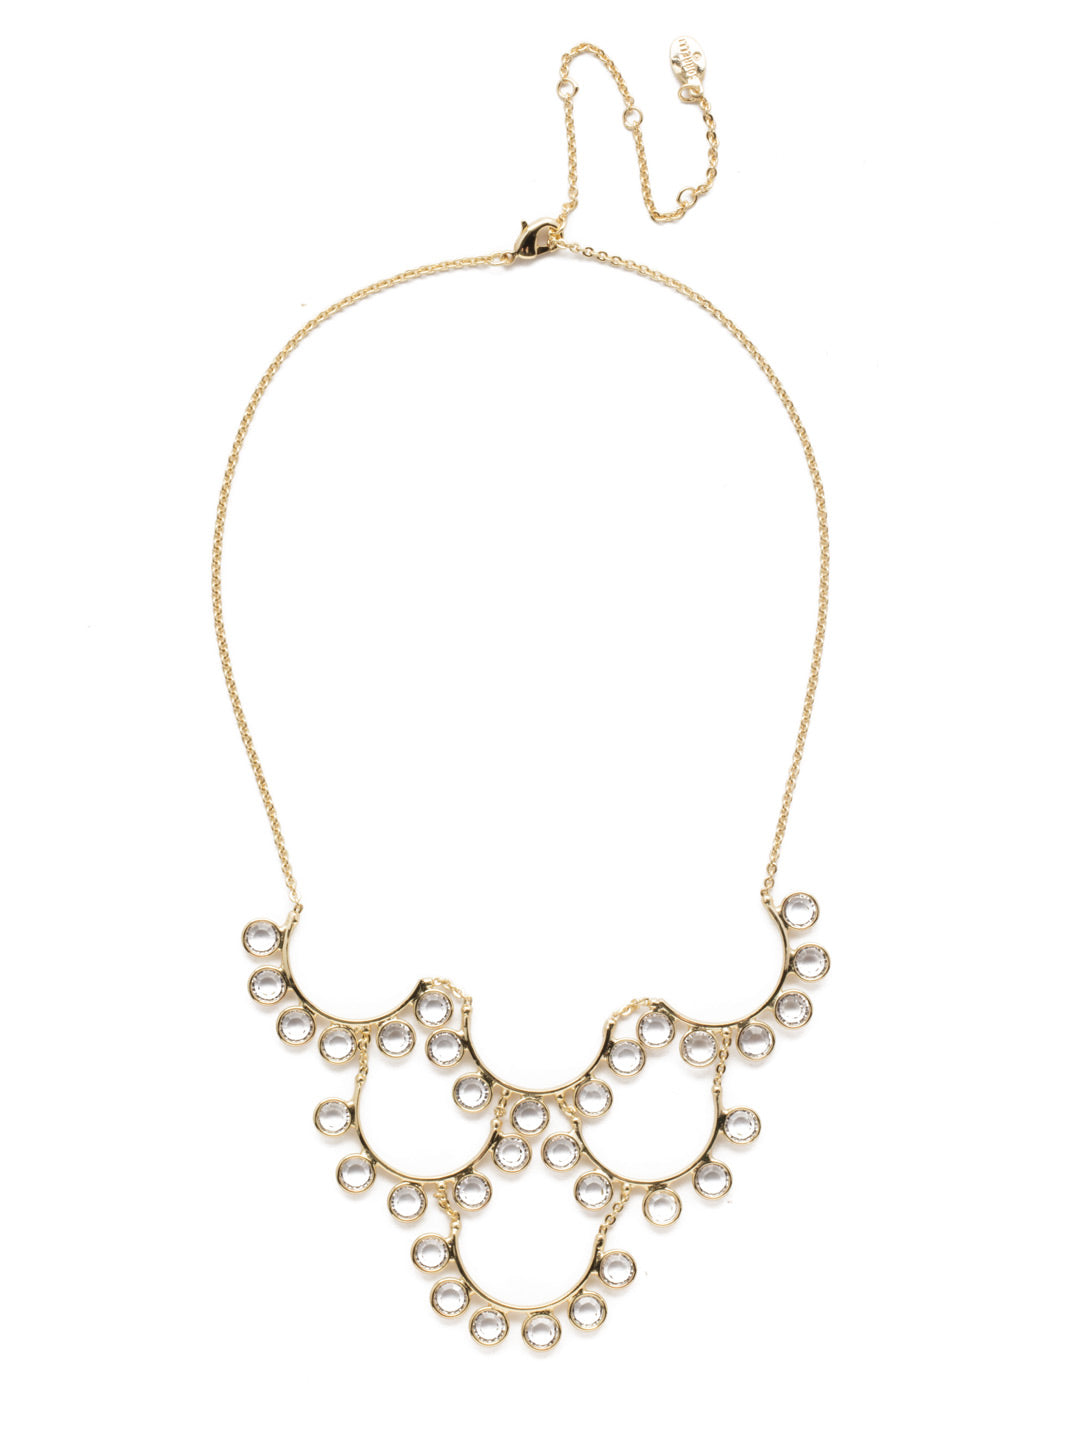 Esmerelda Crystal Statement Necklace - 4NEK31BGCRY